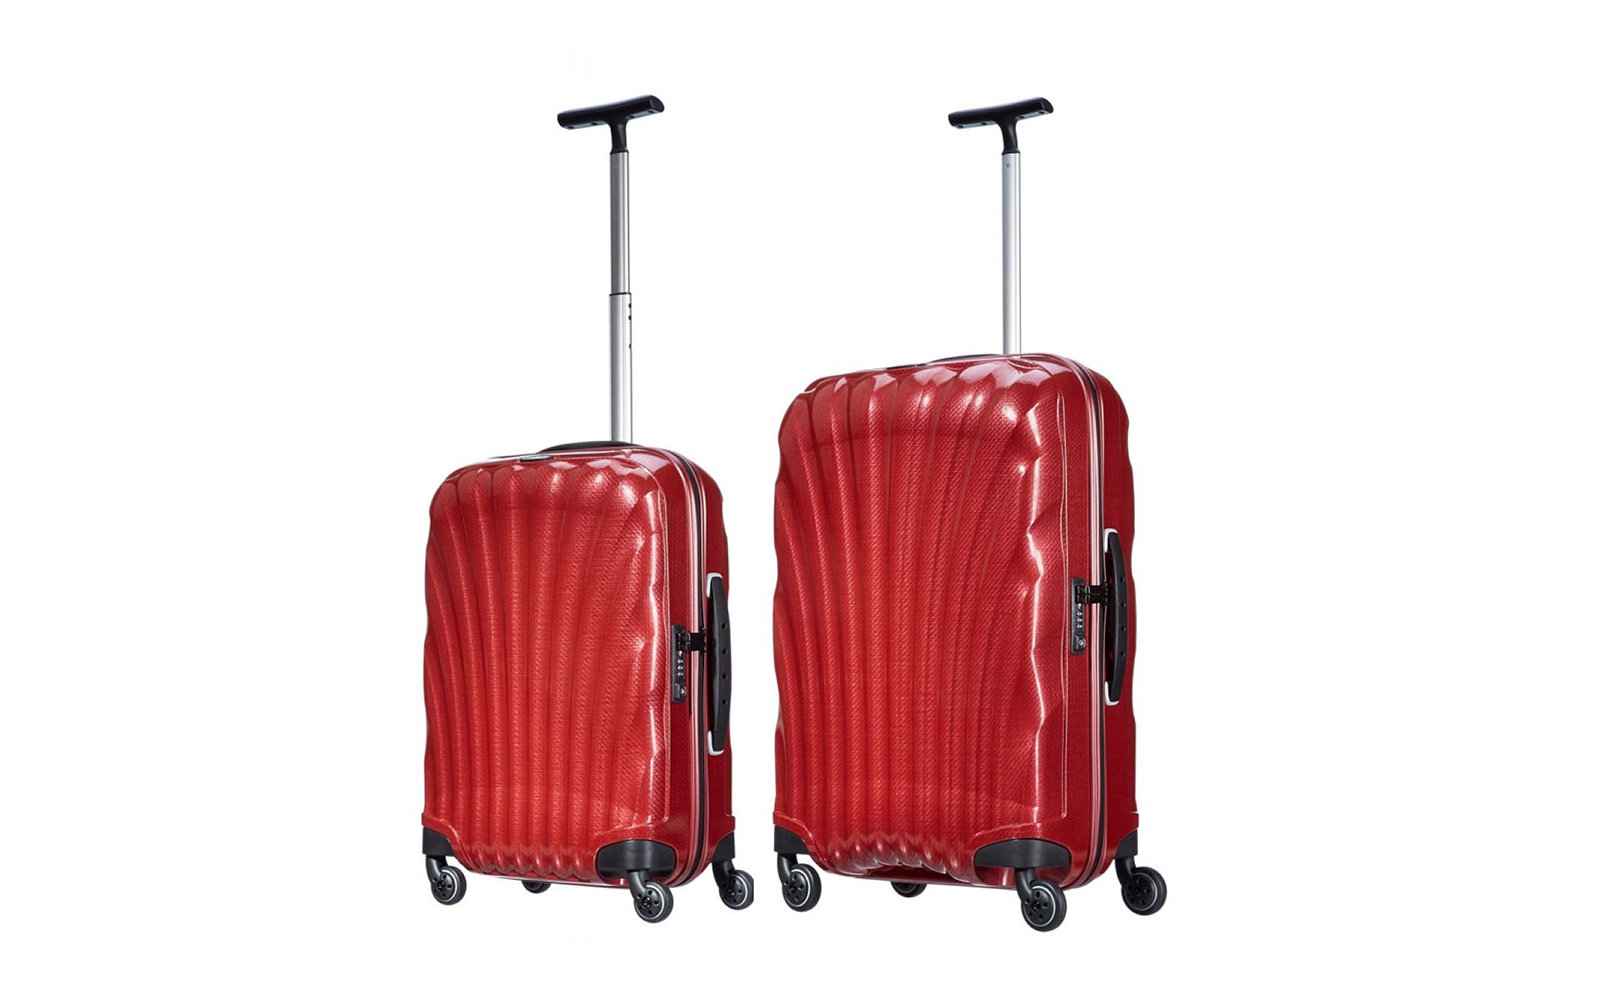 Samsonite Black Label Cosmolite Two-Piece Spinner Luggage